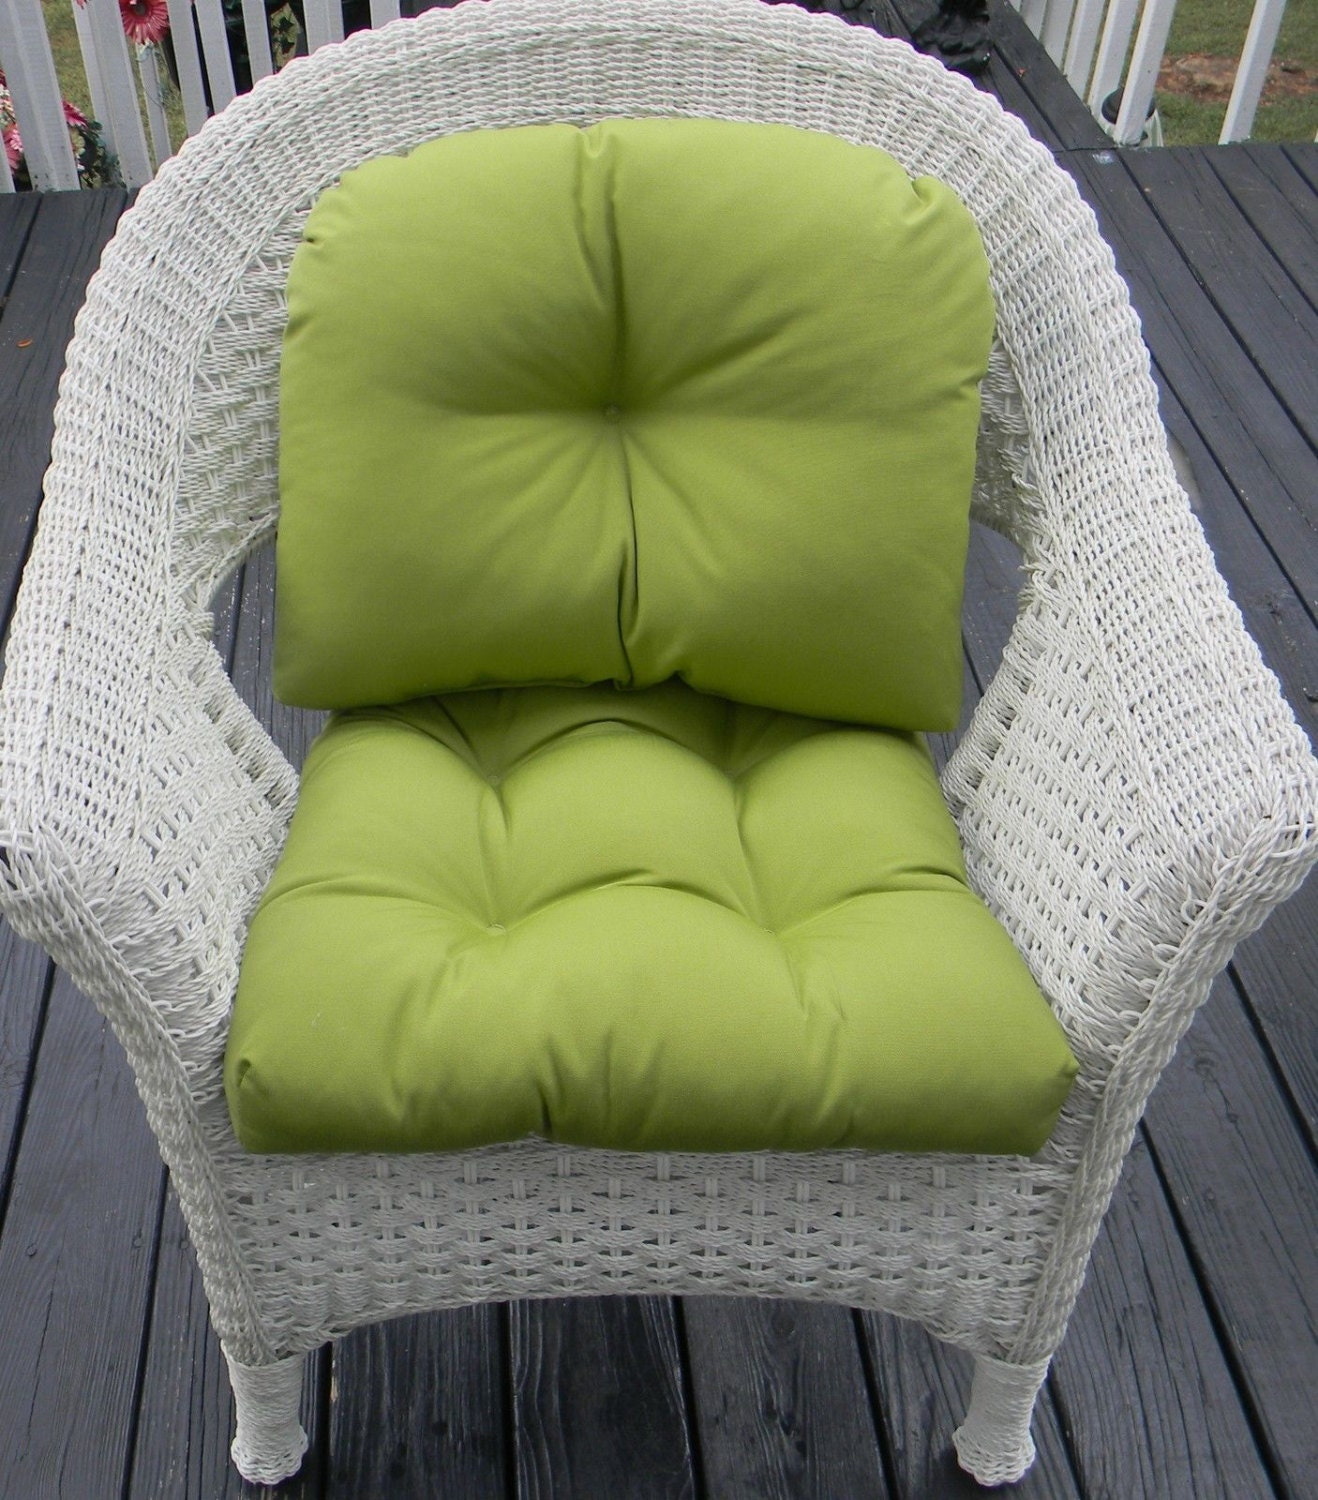 Indoor Outdoor Wicker Chair Cushion Back Pillow Cushion